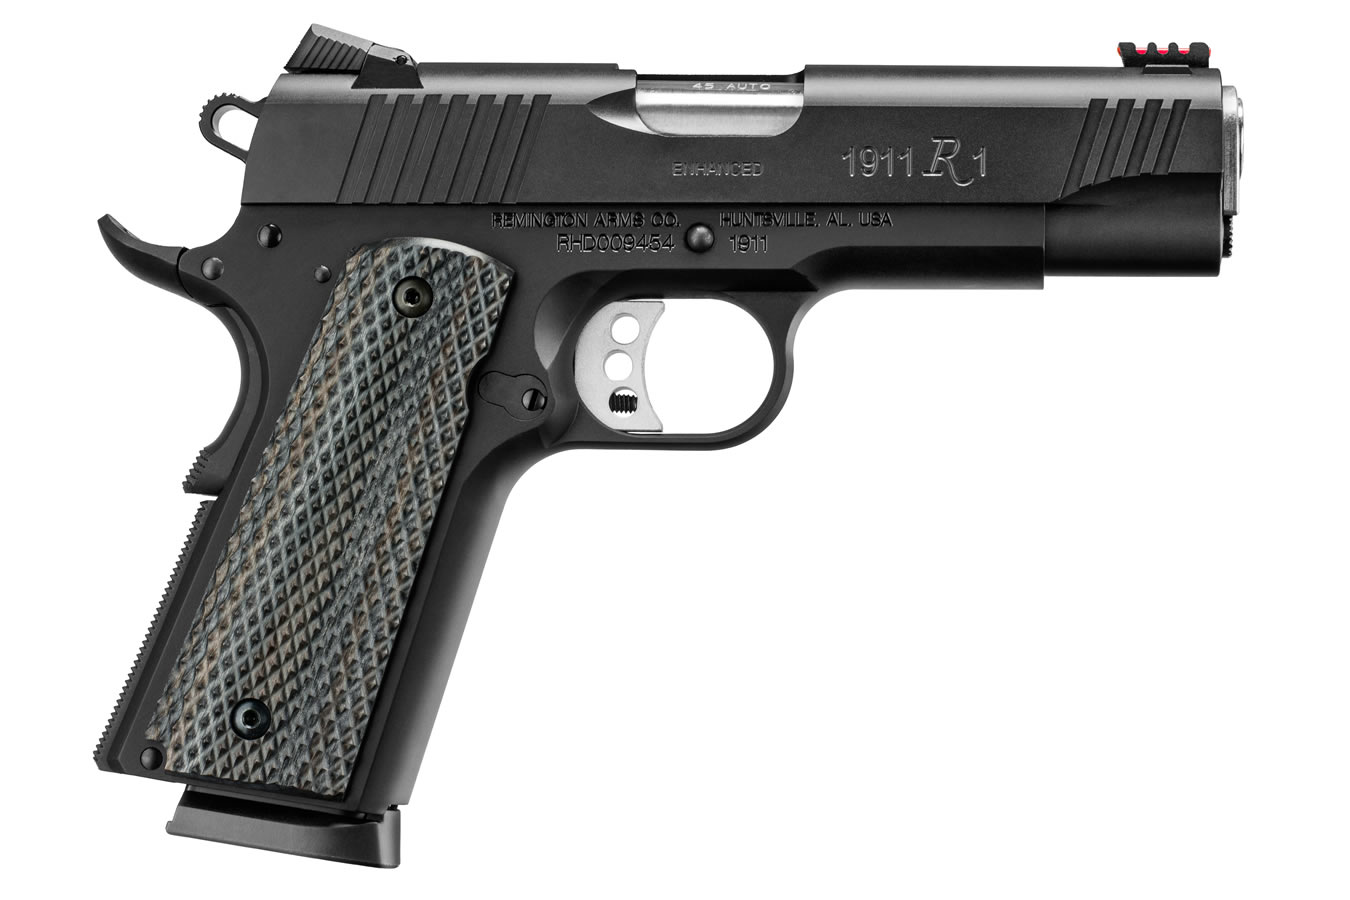 No. 9 Best Selling: REMINGTON 1911 R1 ULTRALIGHT COMMANDER 45 ACP